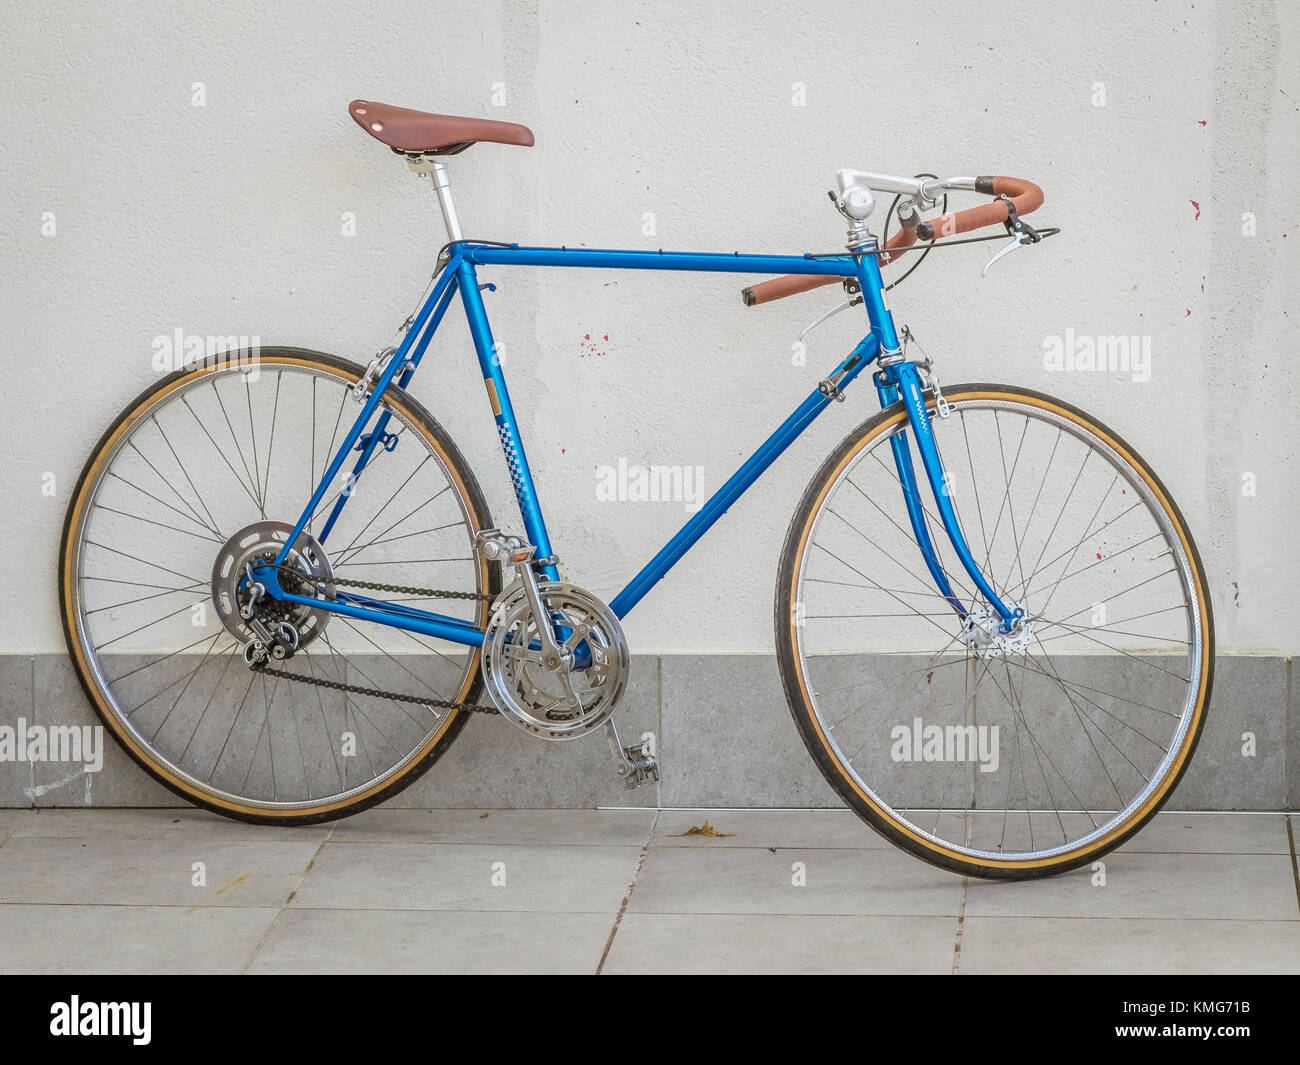 Retro styled bicycle in front of wall - Stock Image